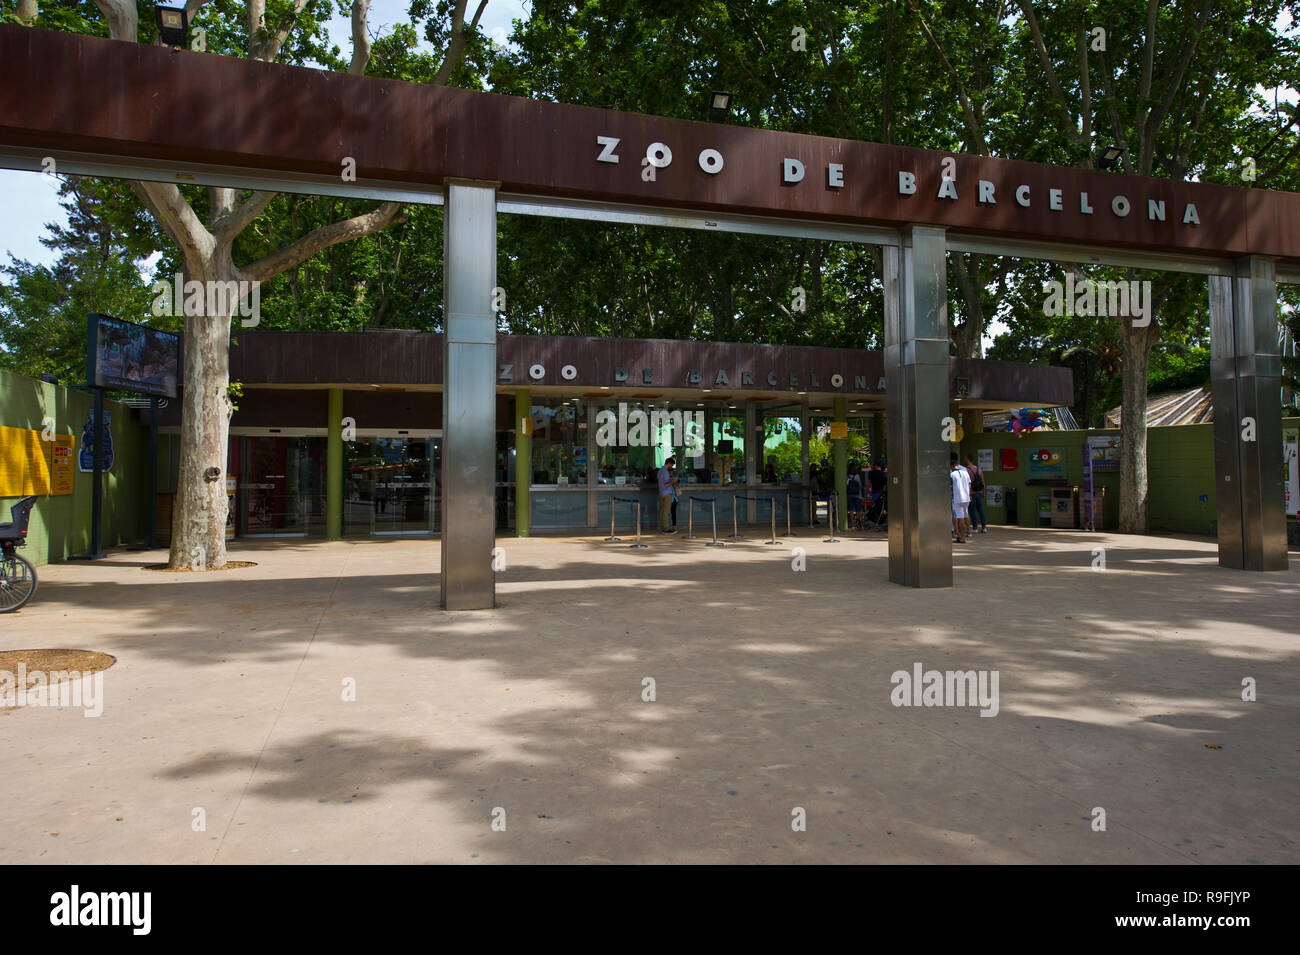 People At The Entrance Of The Zoo In Barcelona Spain Stock Photo 229610858 Alamy